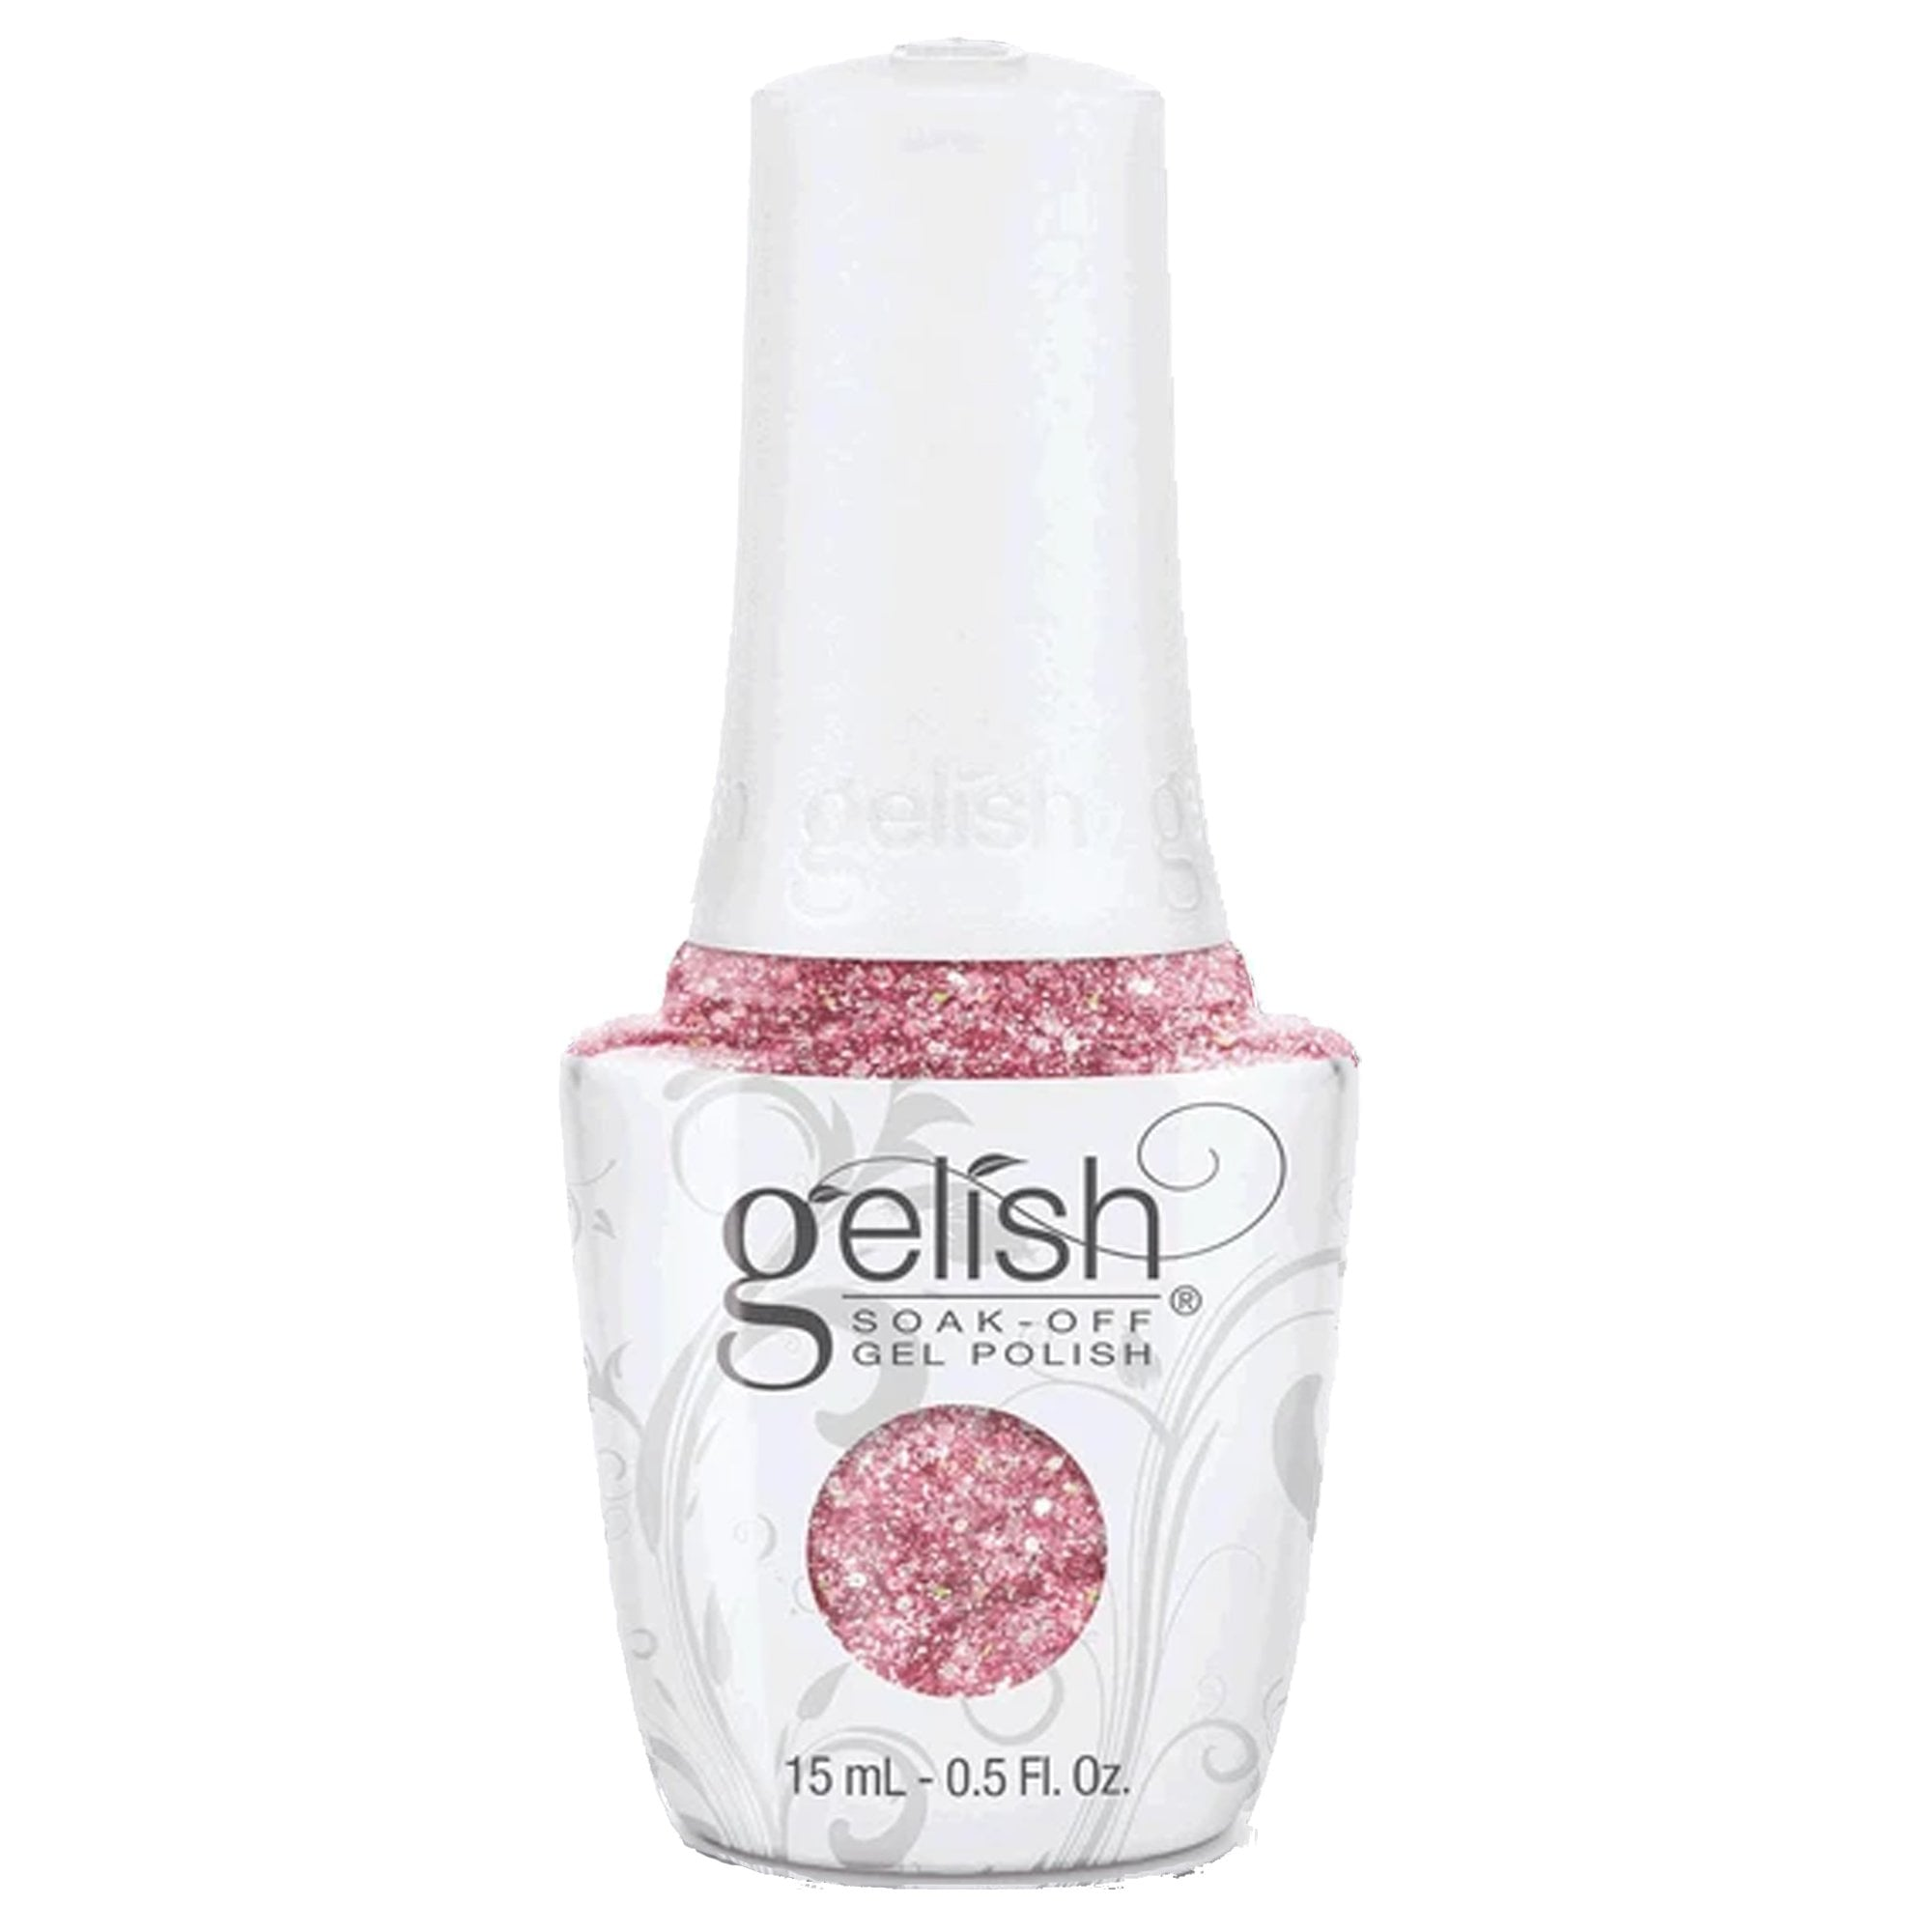 Gelish Soak-Off Gel Nail Polish - June Bride 15ml